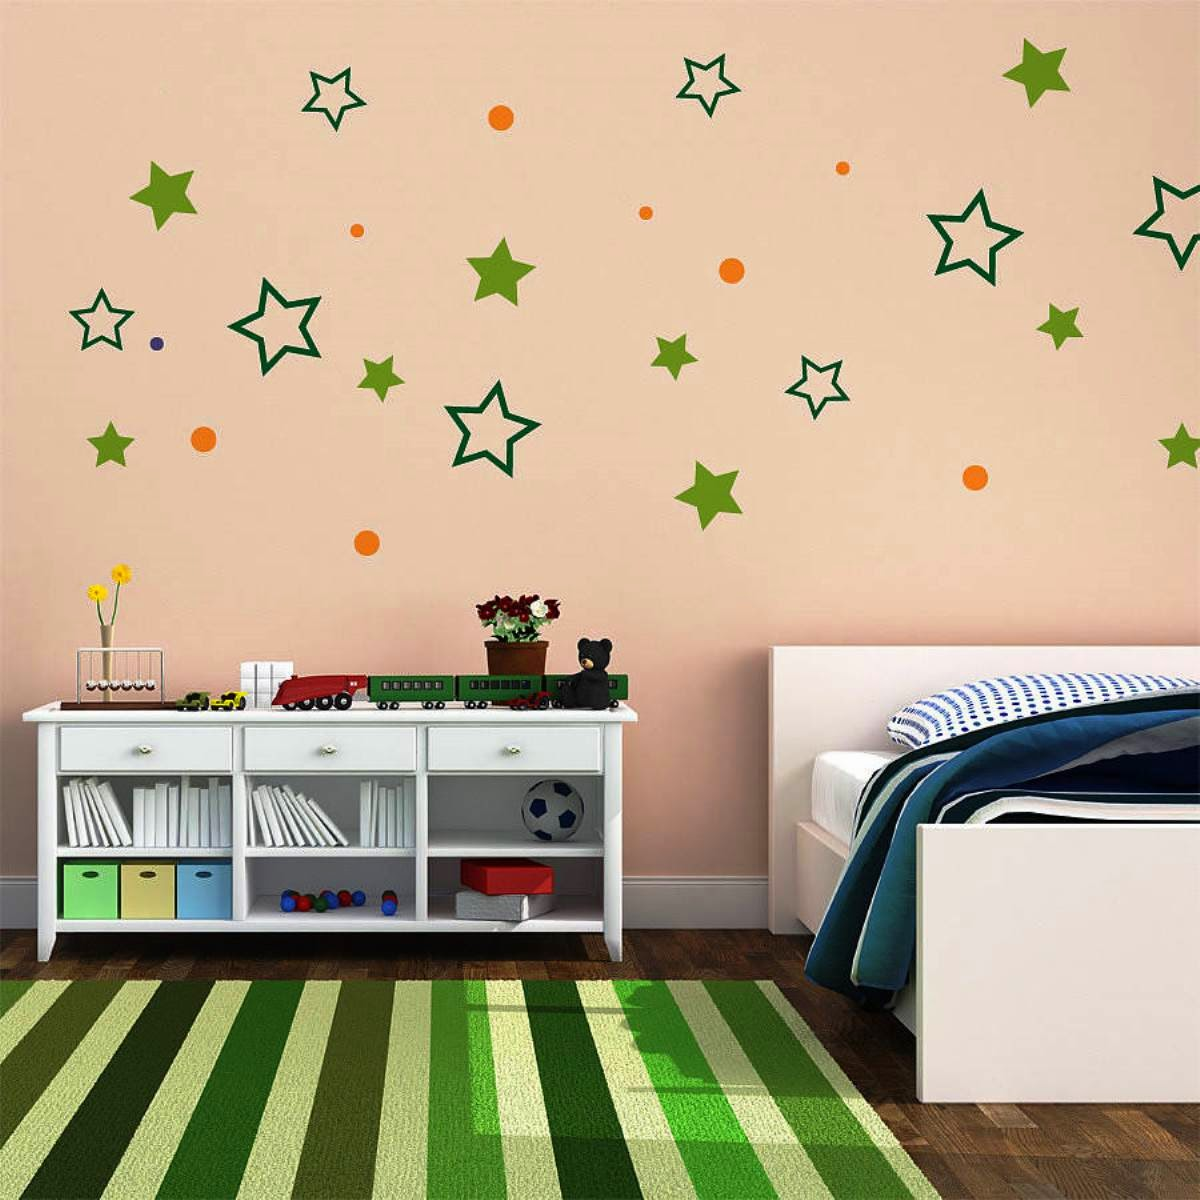 Simple bedroom wall decoration - Simple Wall Designs For Bedrooms 2014